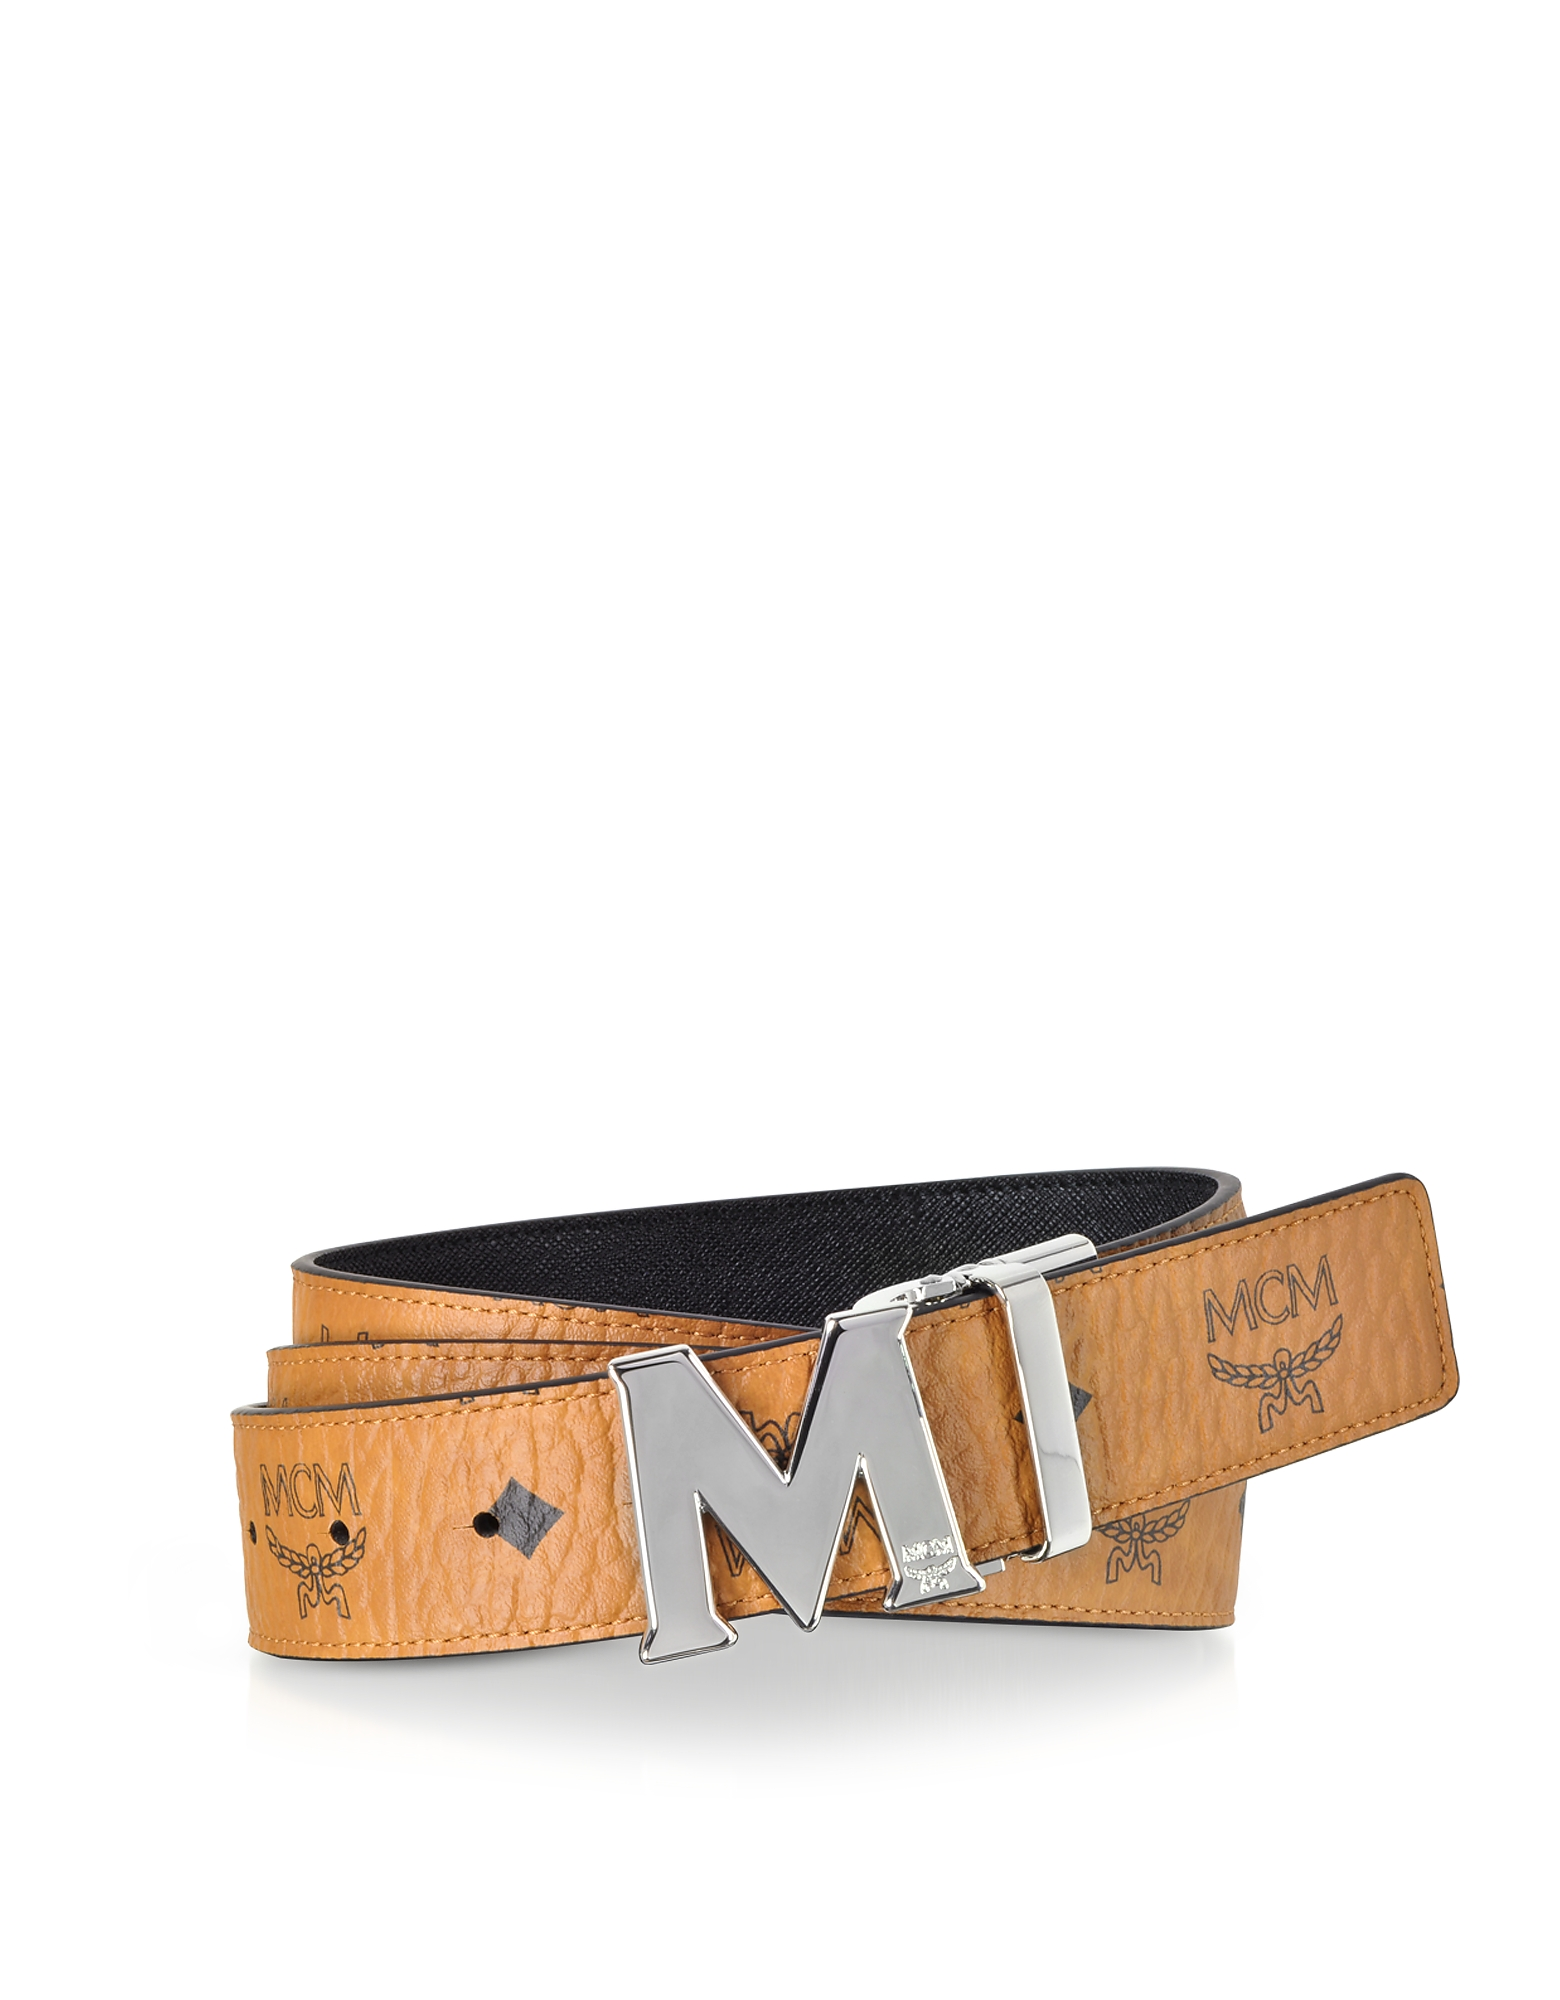 Cognac Visetos Claus M Reversible Belt w/Signature Buckle